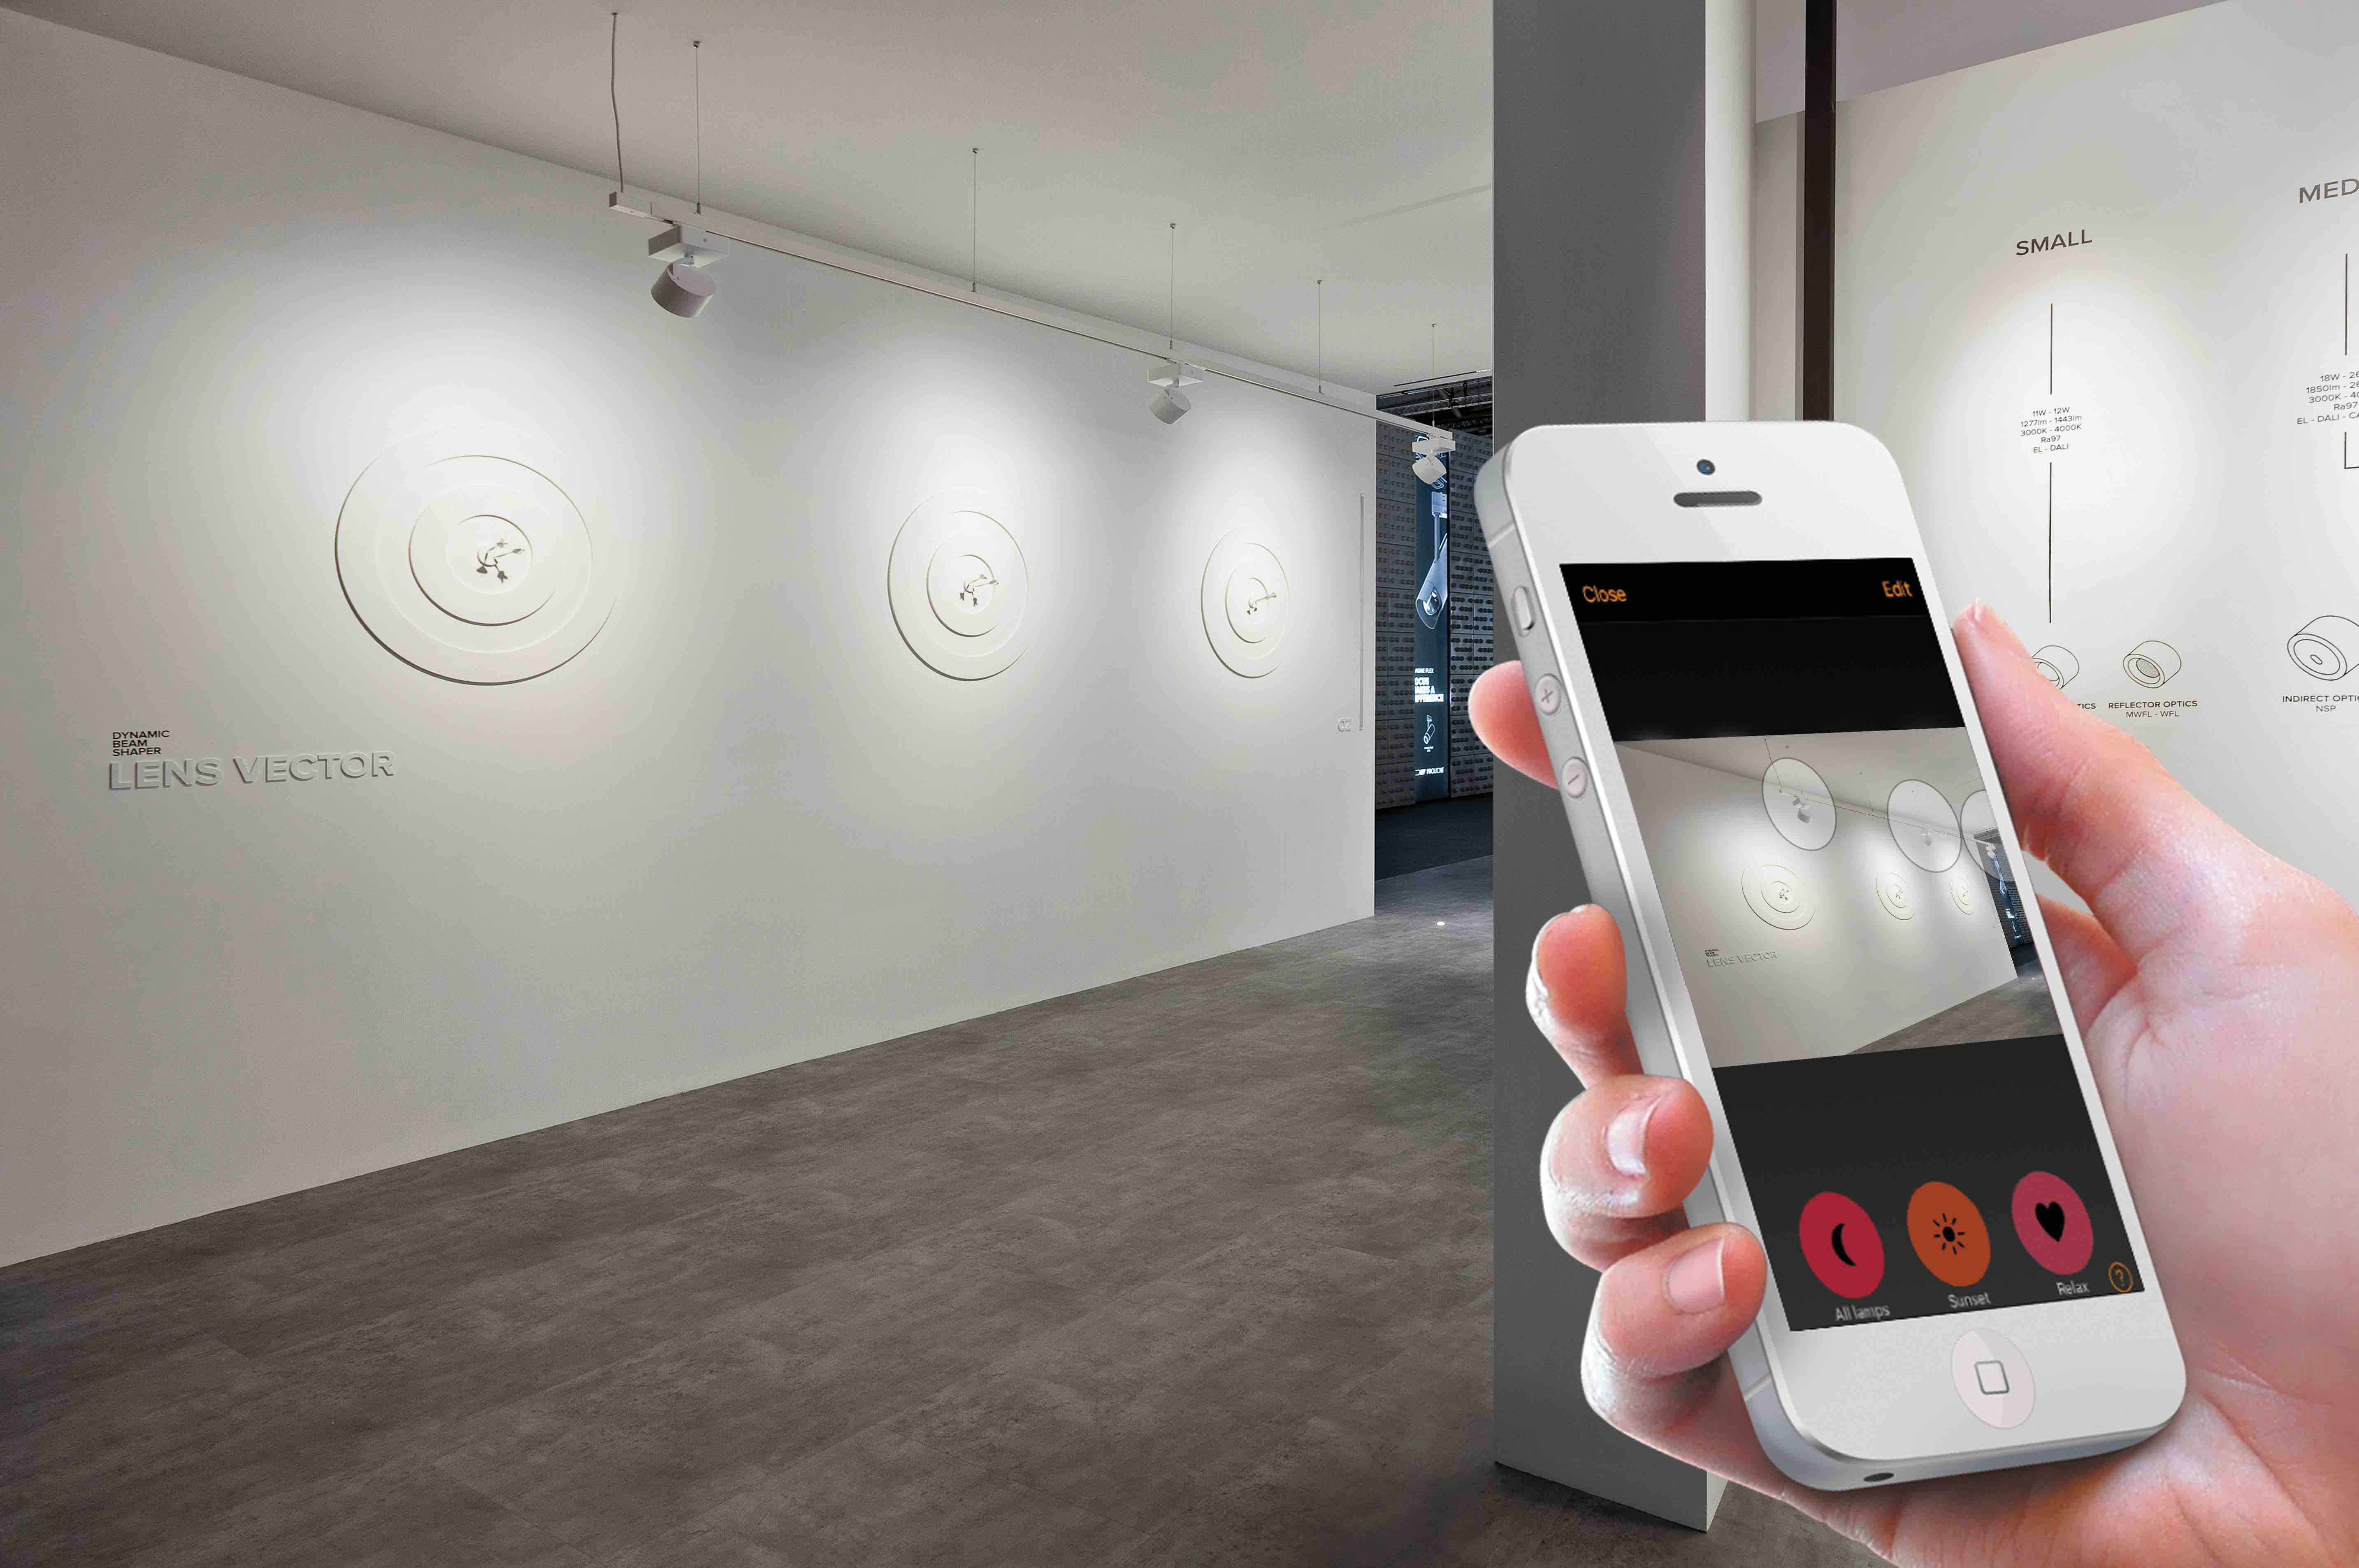 Upgrade to app brings easier commissioning of smart lighting